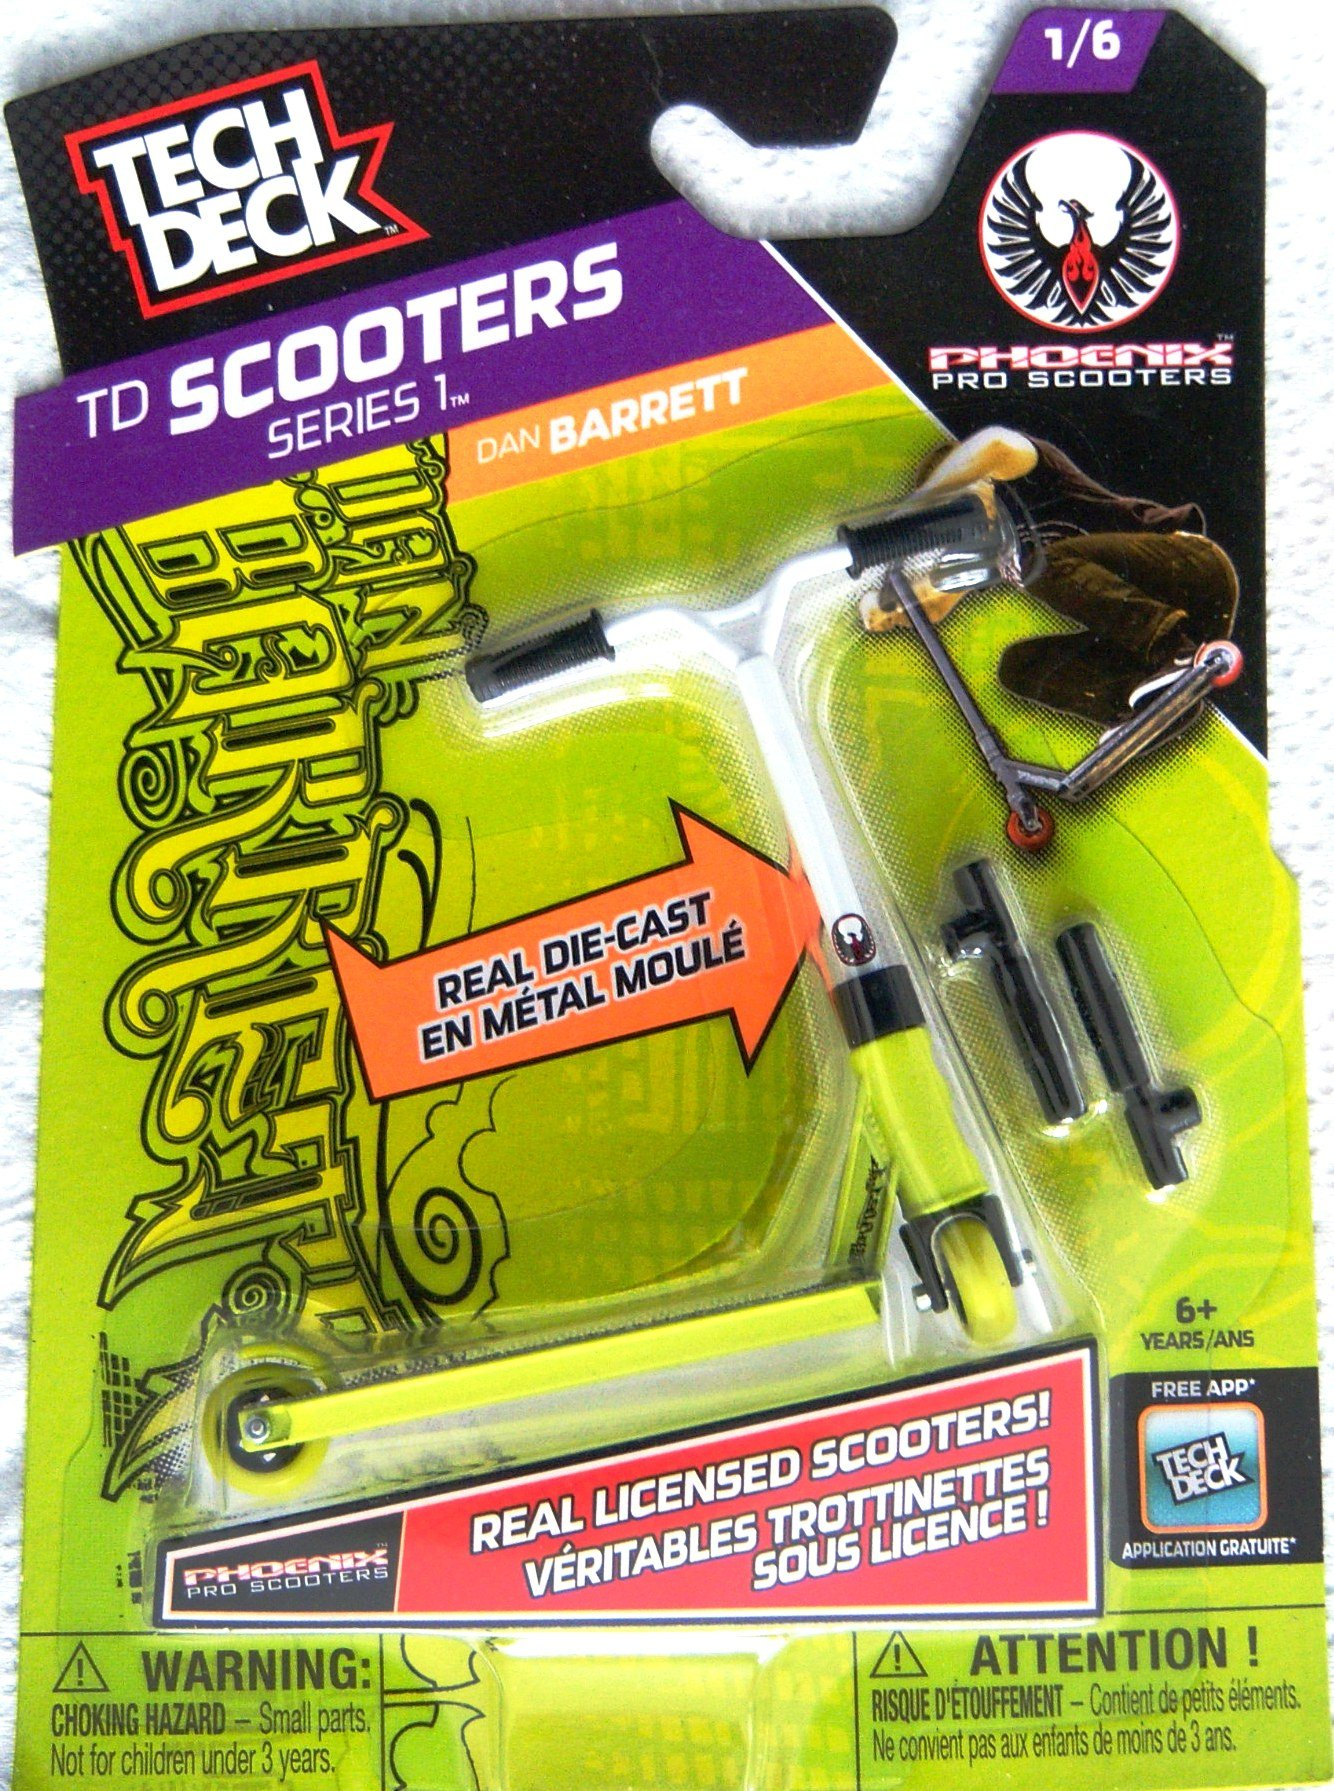 Tech Deck Scooters Series 1 Phoenix Pro Scooters Dan Barrett 1/6